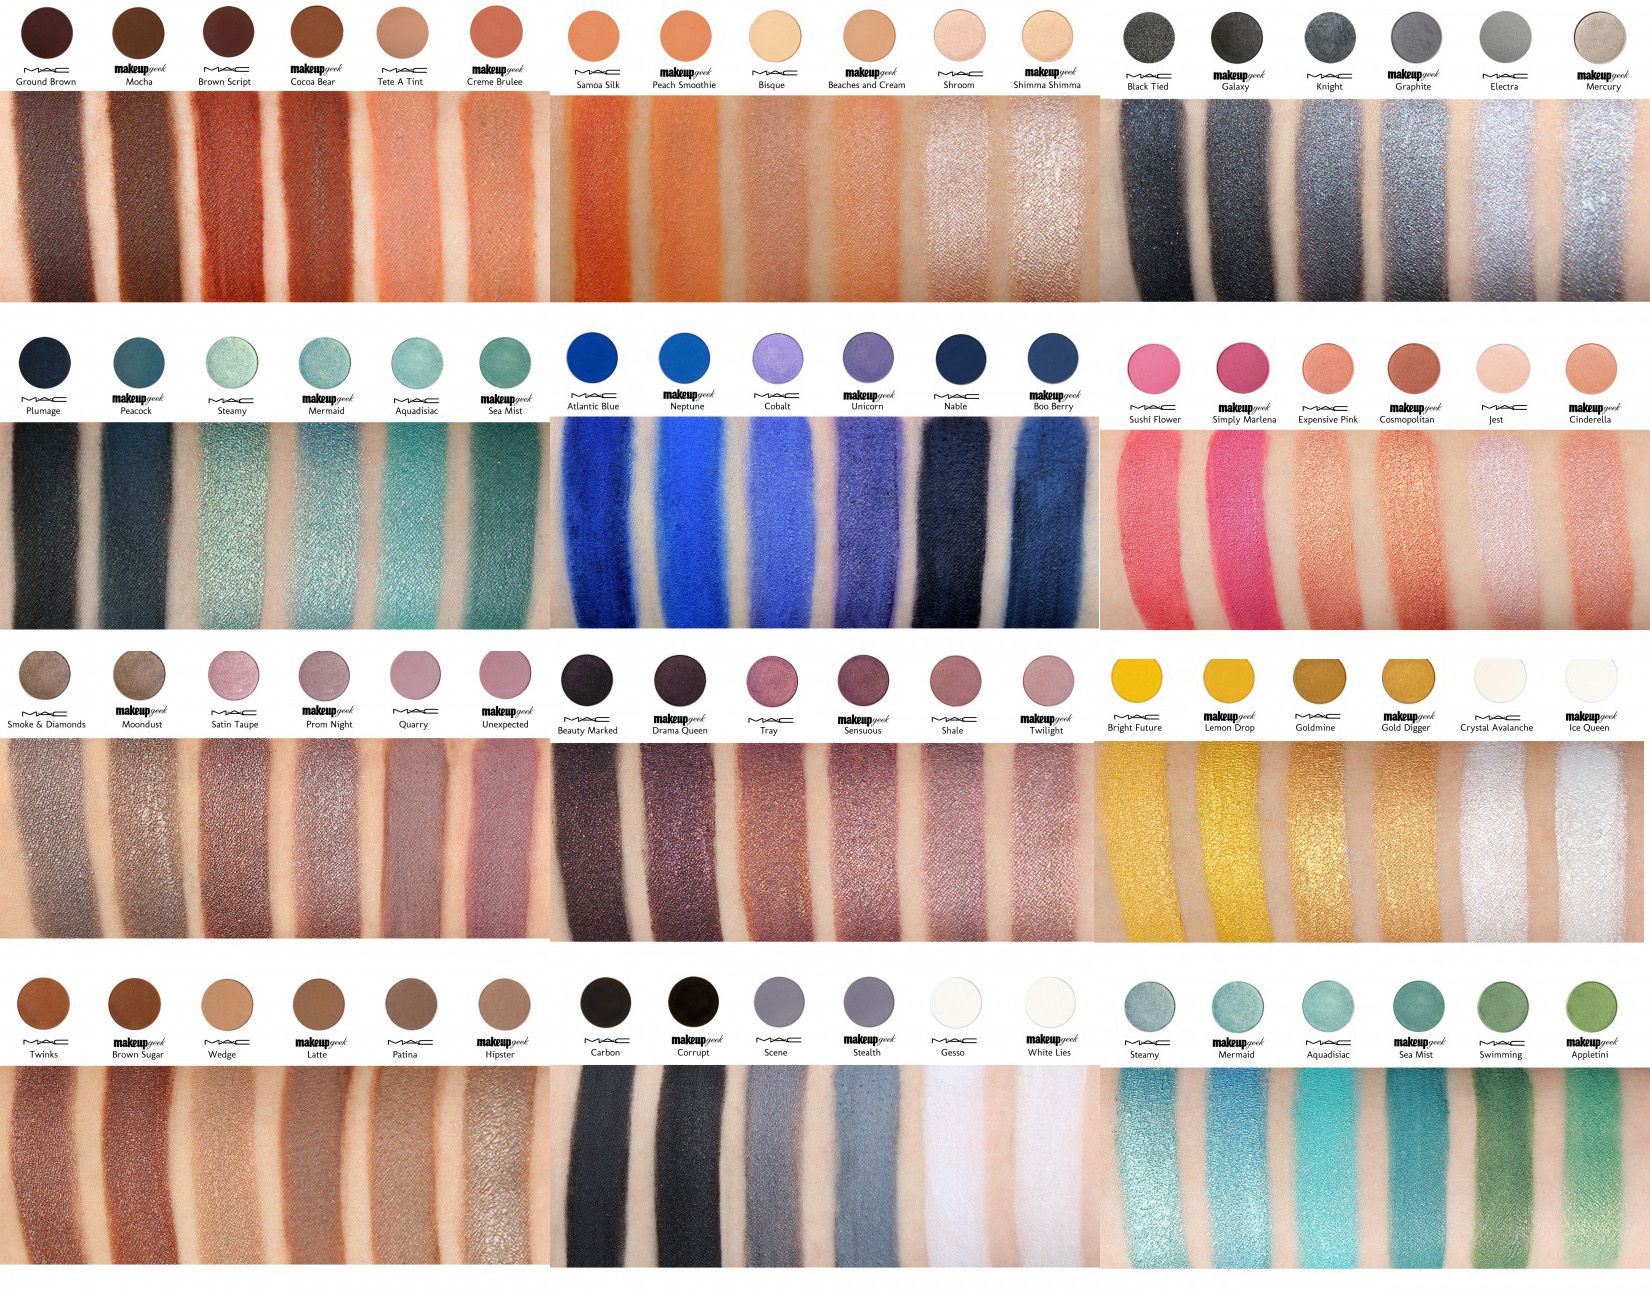 Makeup Geek dupes for MAC eye shadows, with swatches. So